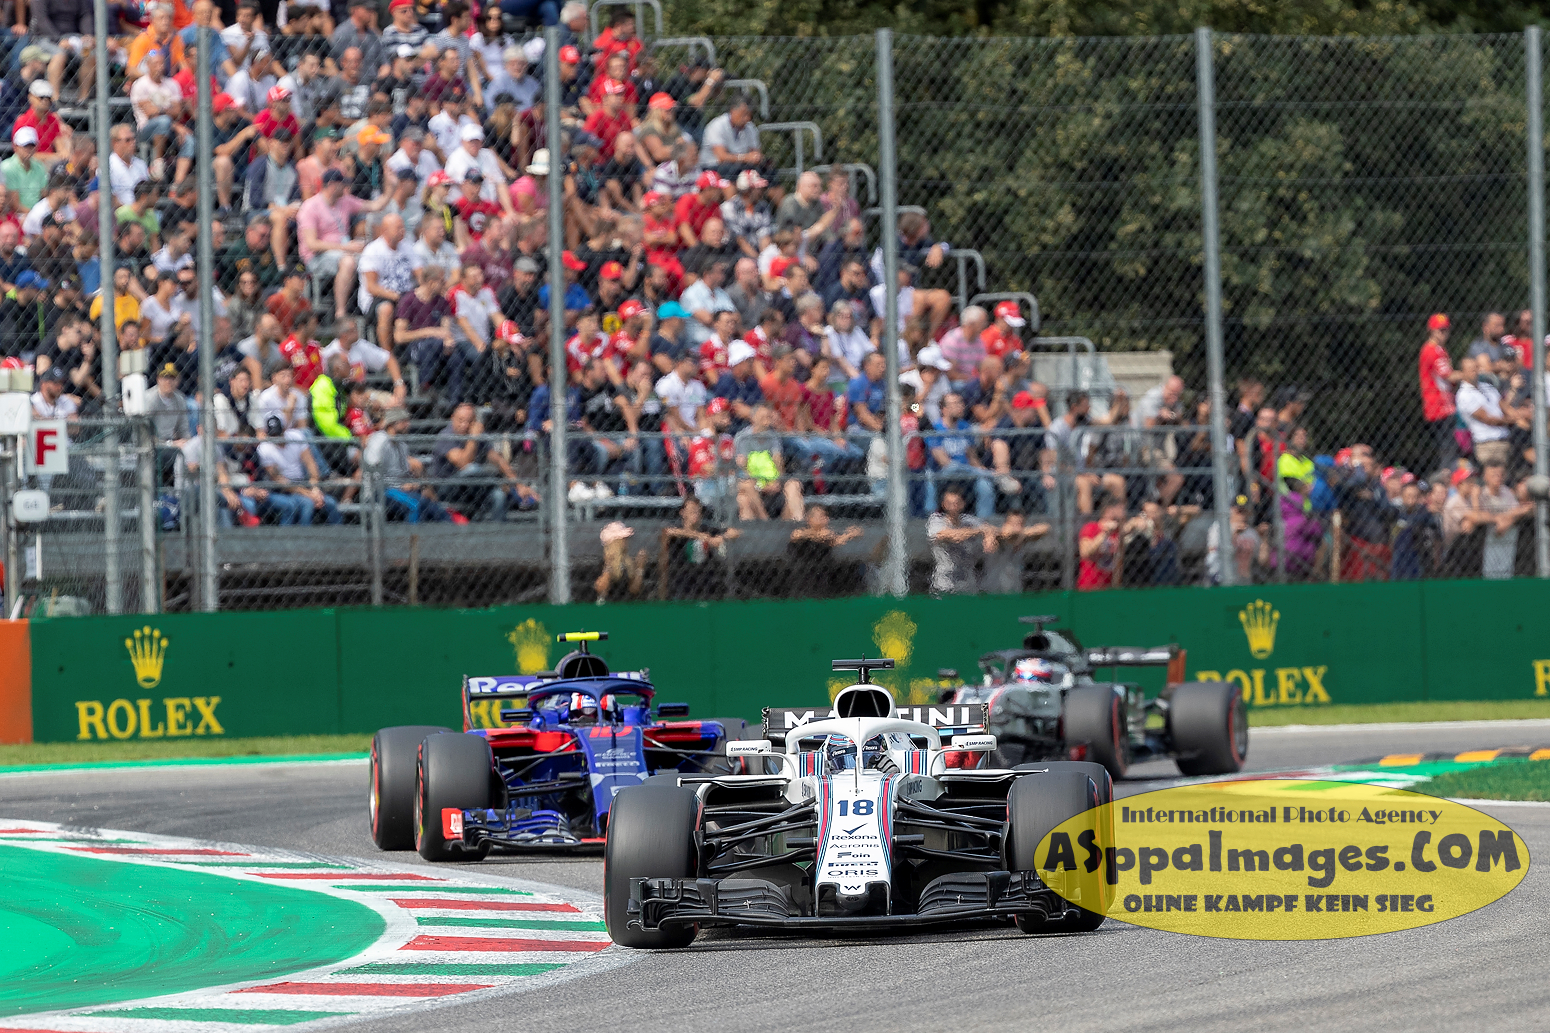 13512018.FIA.Formula.1.Round.14.Italian.GP.Monza.Day.4.FP.3.Qualy.ASppaImages.COM by .